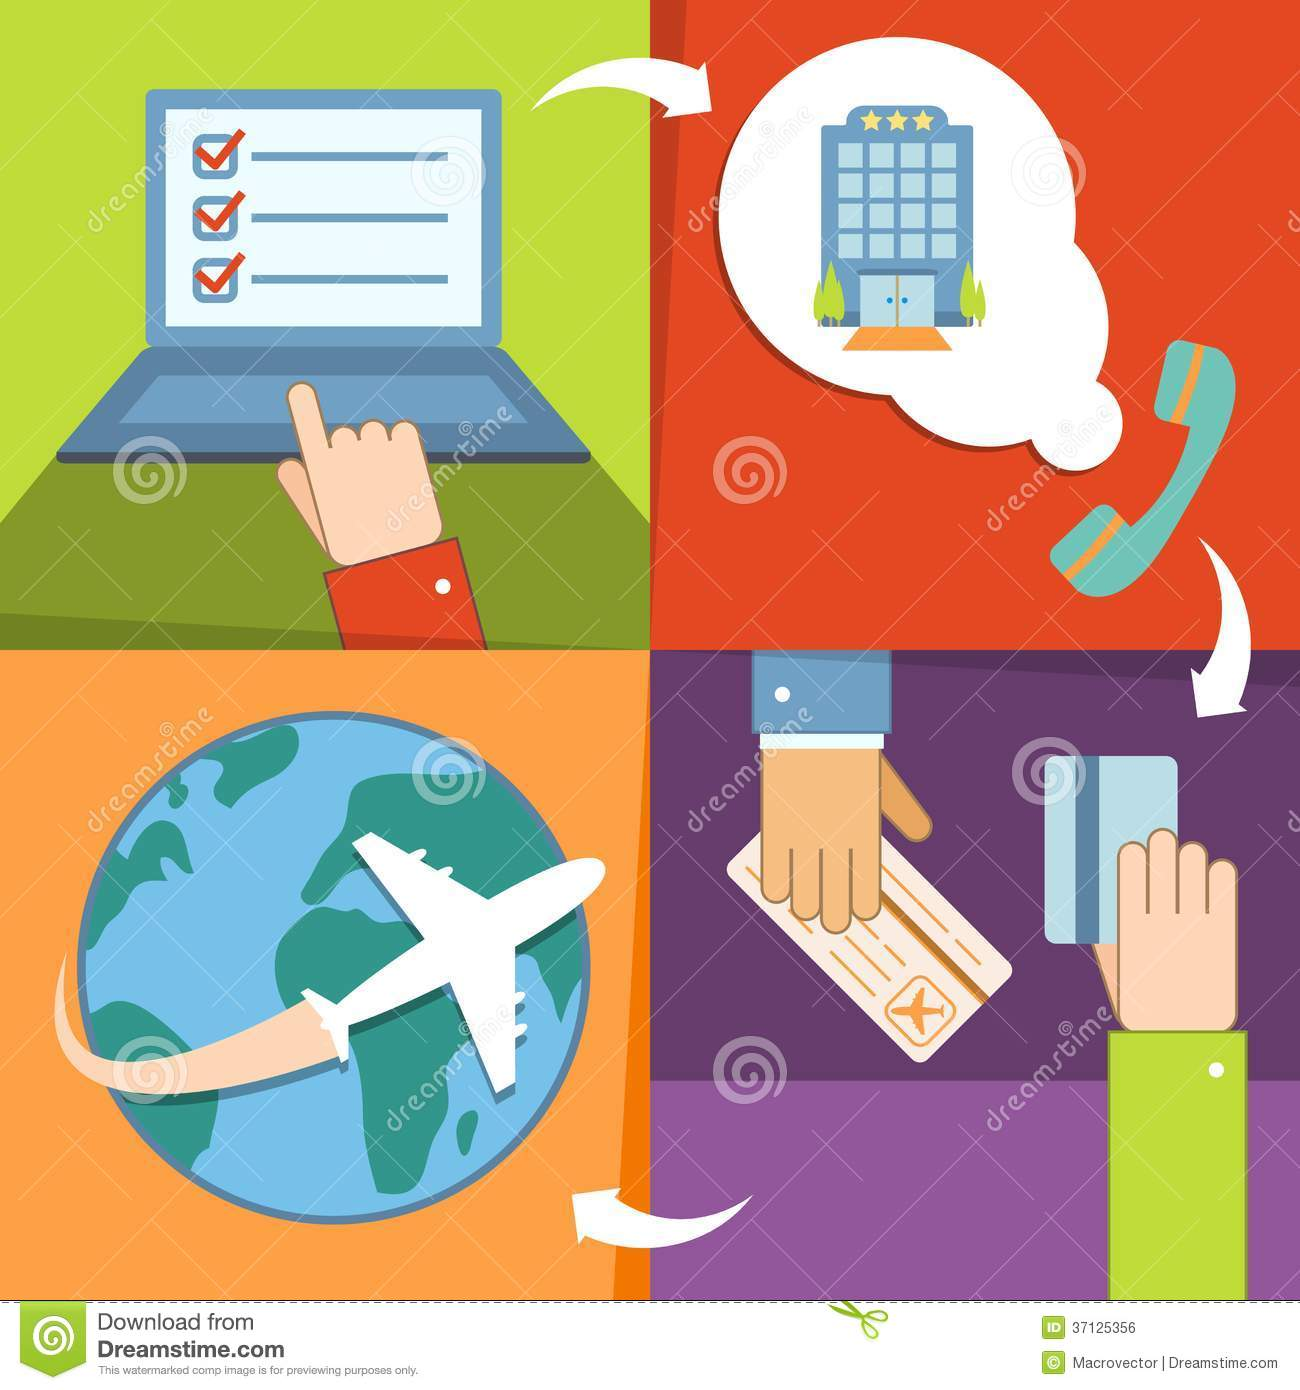 Buy Travel Tickets Online: Business Reservation And Booking Icons Set Royalty Free